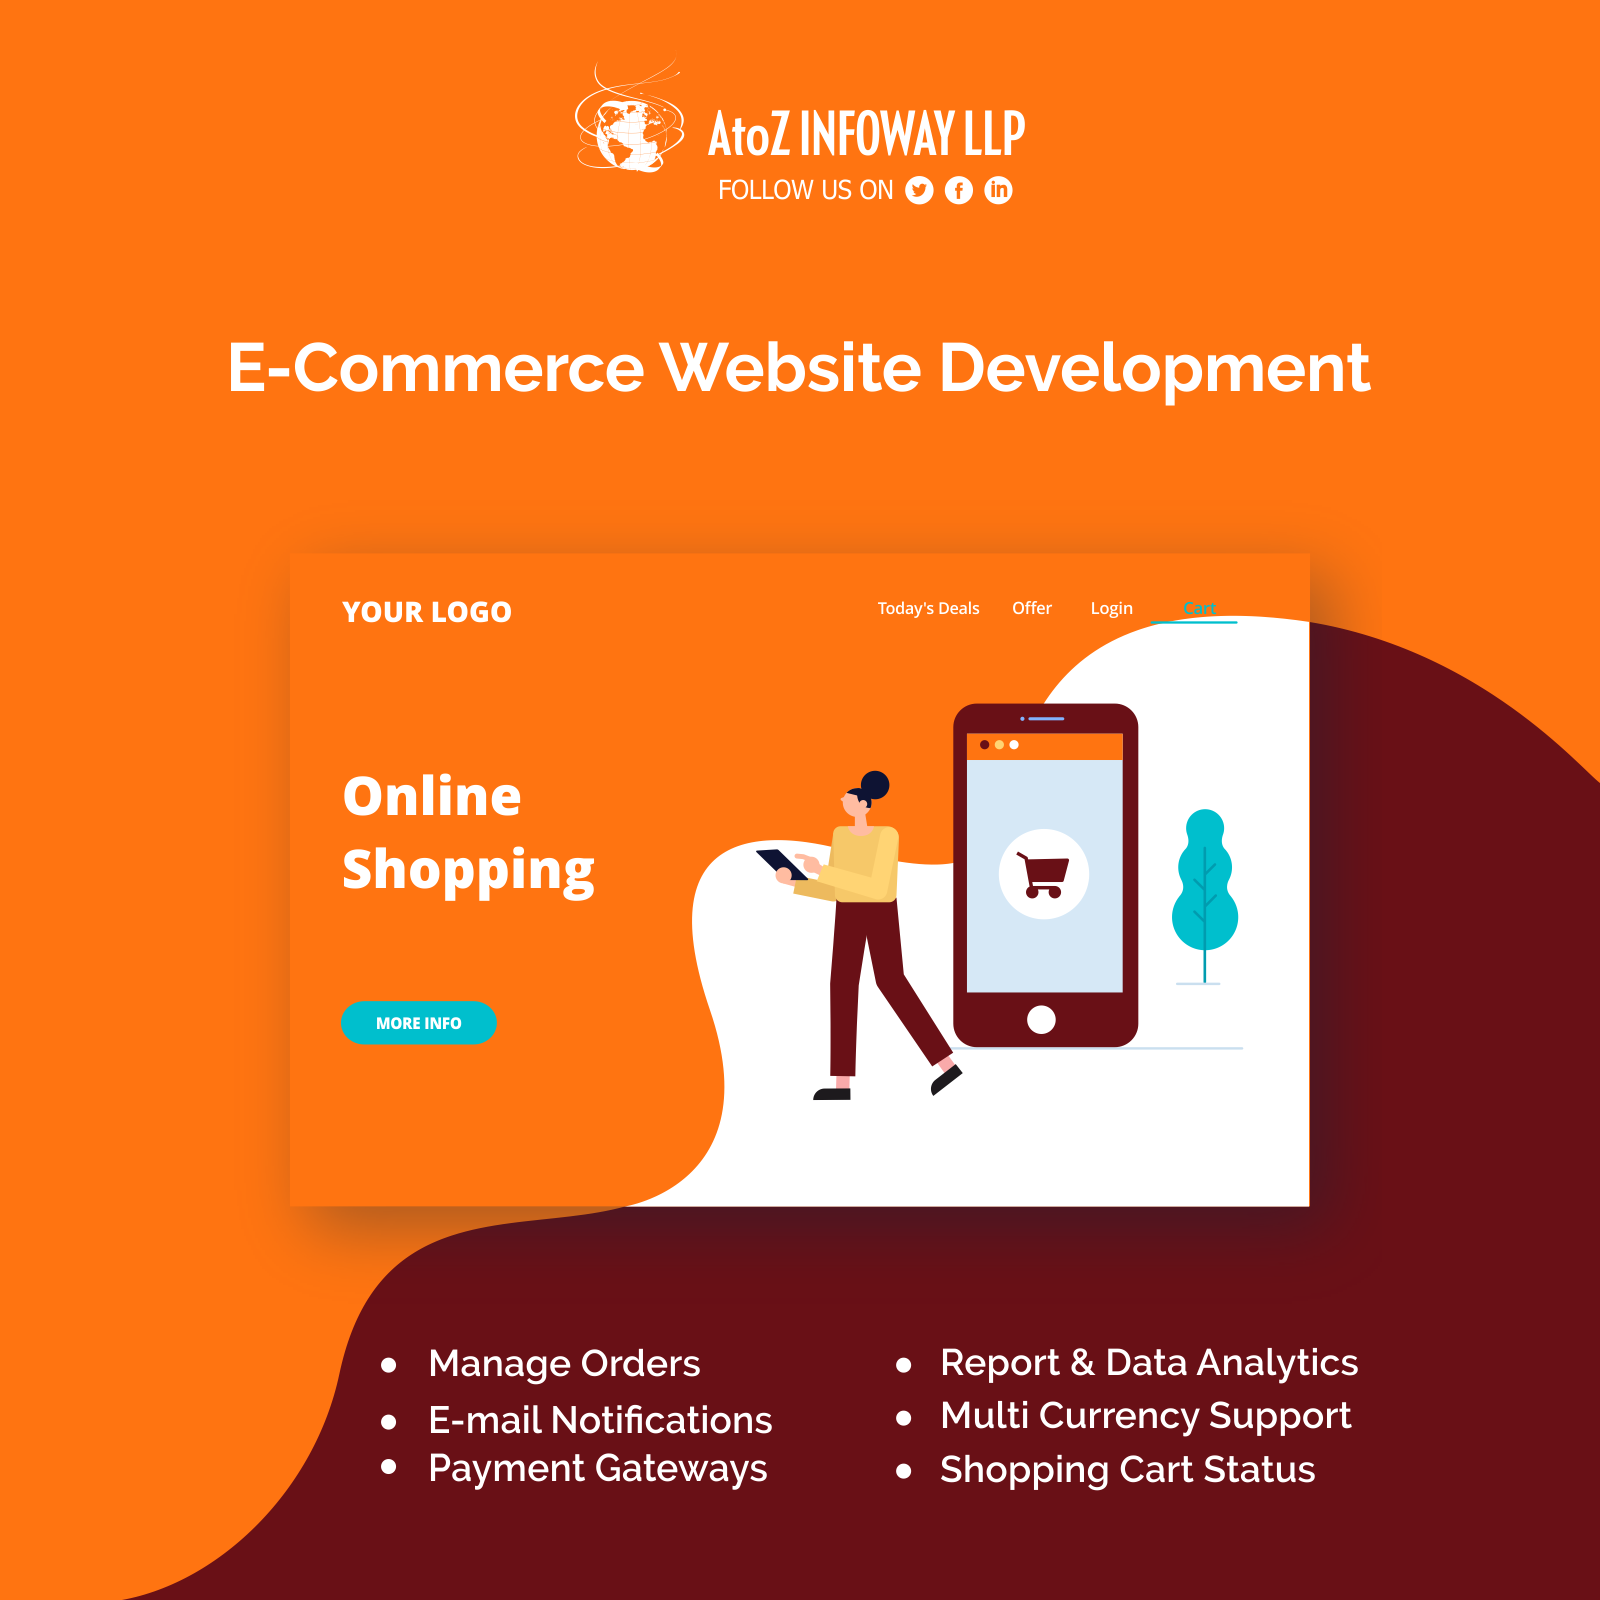 AtoZ E-Commerce Website Development post 02.png